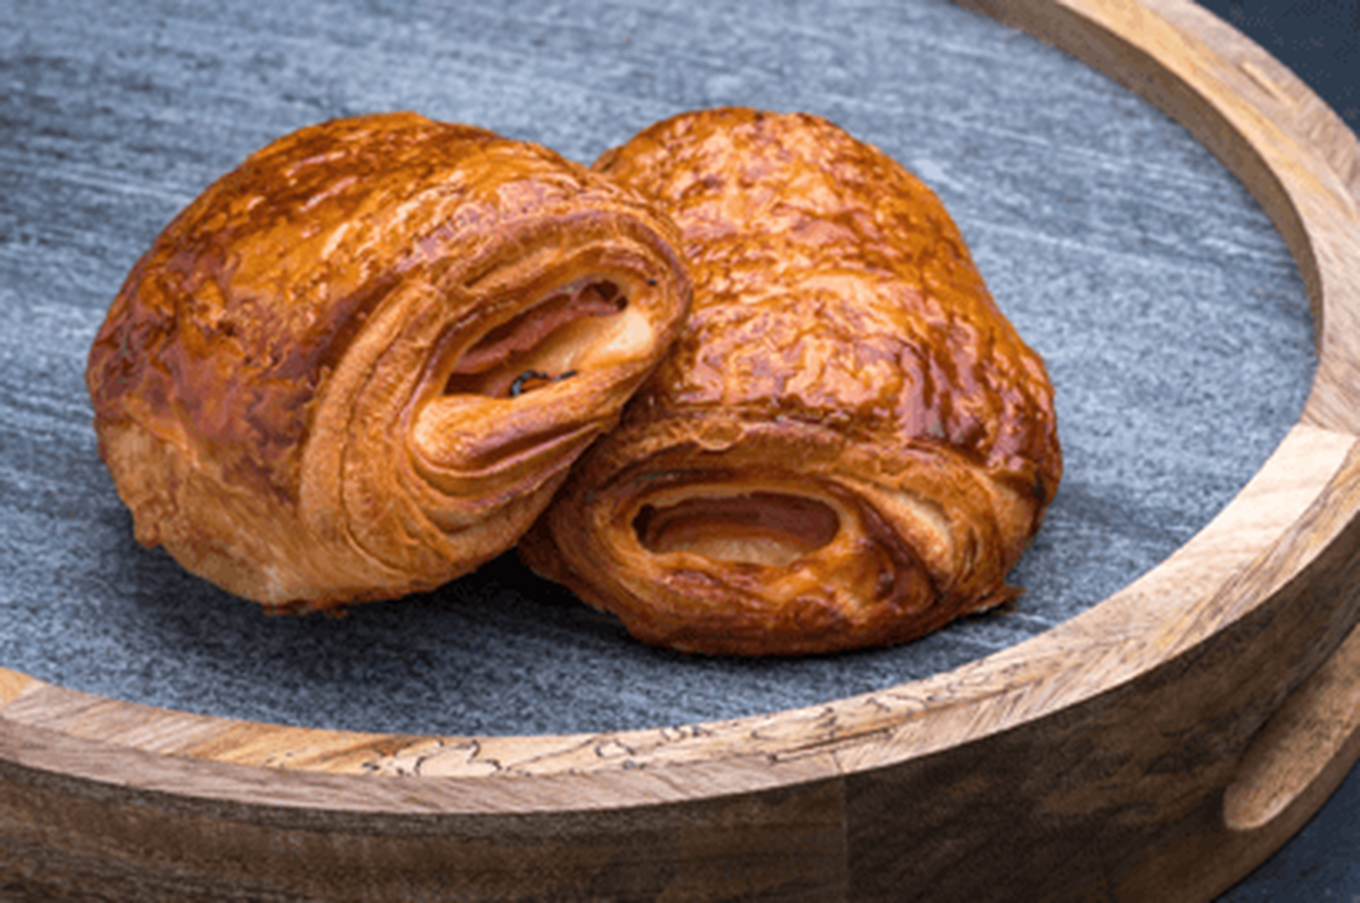 Baked Ham and Cheese Croissant